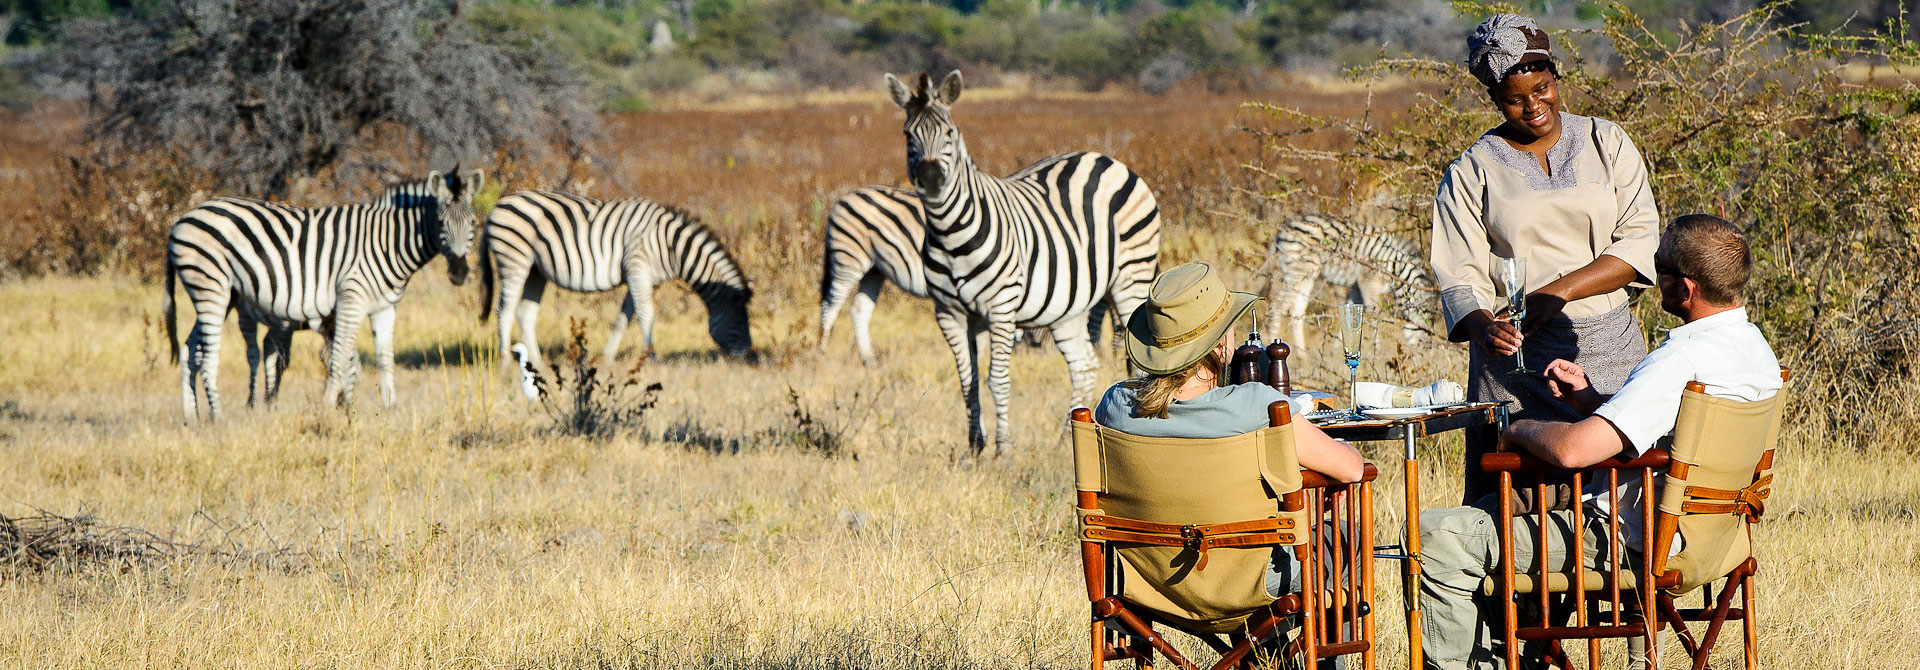 Mombo Camp - Moremi Game Reserve